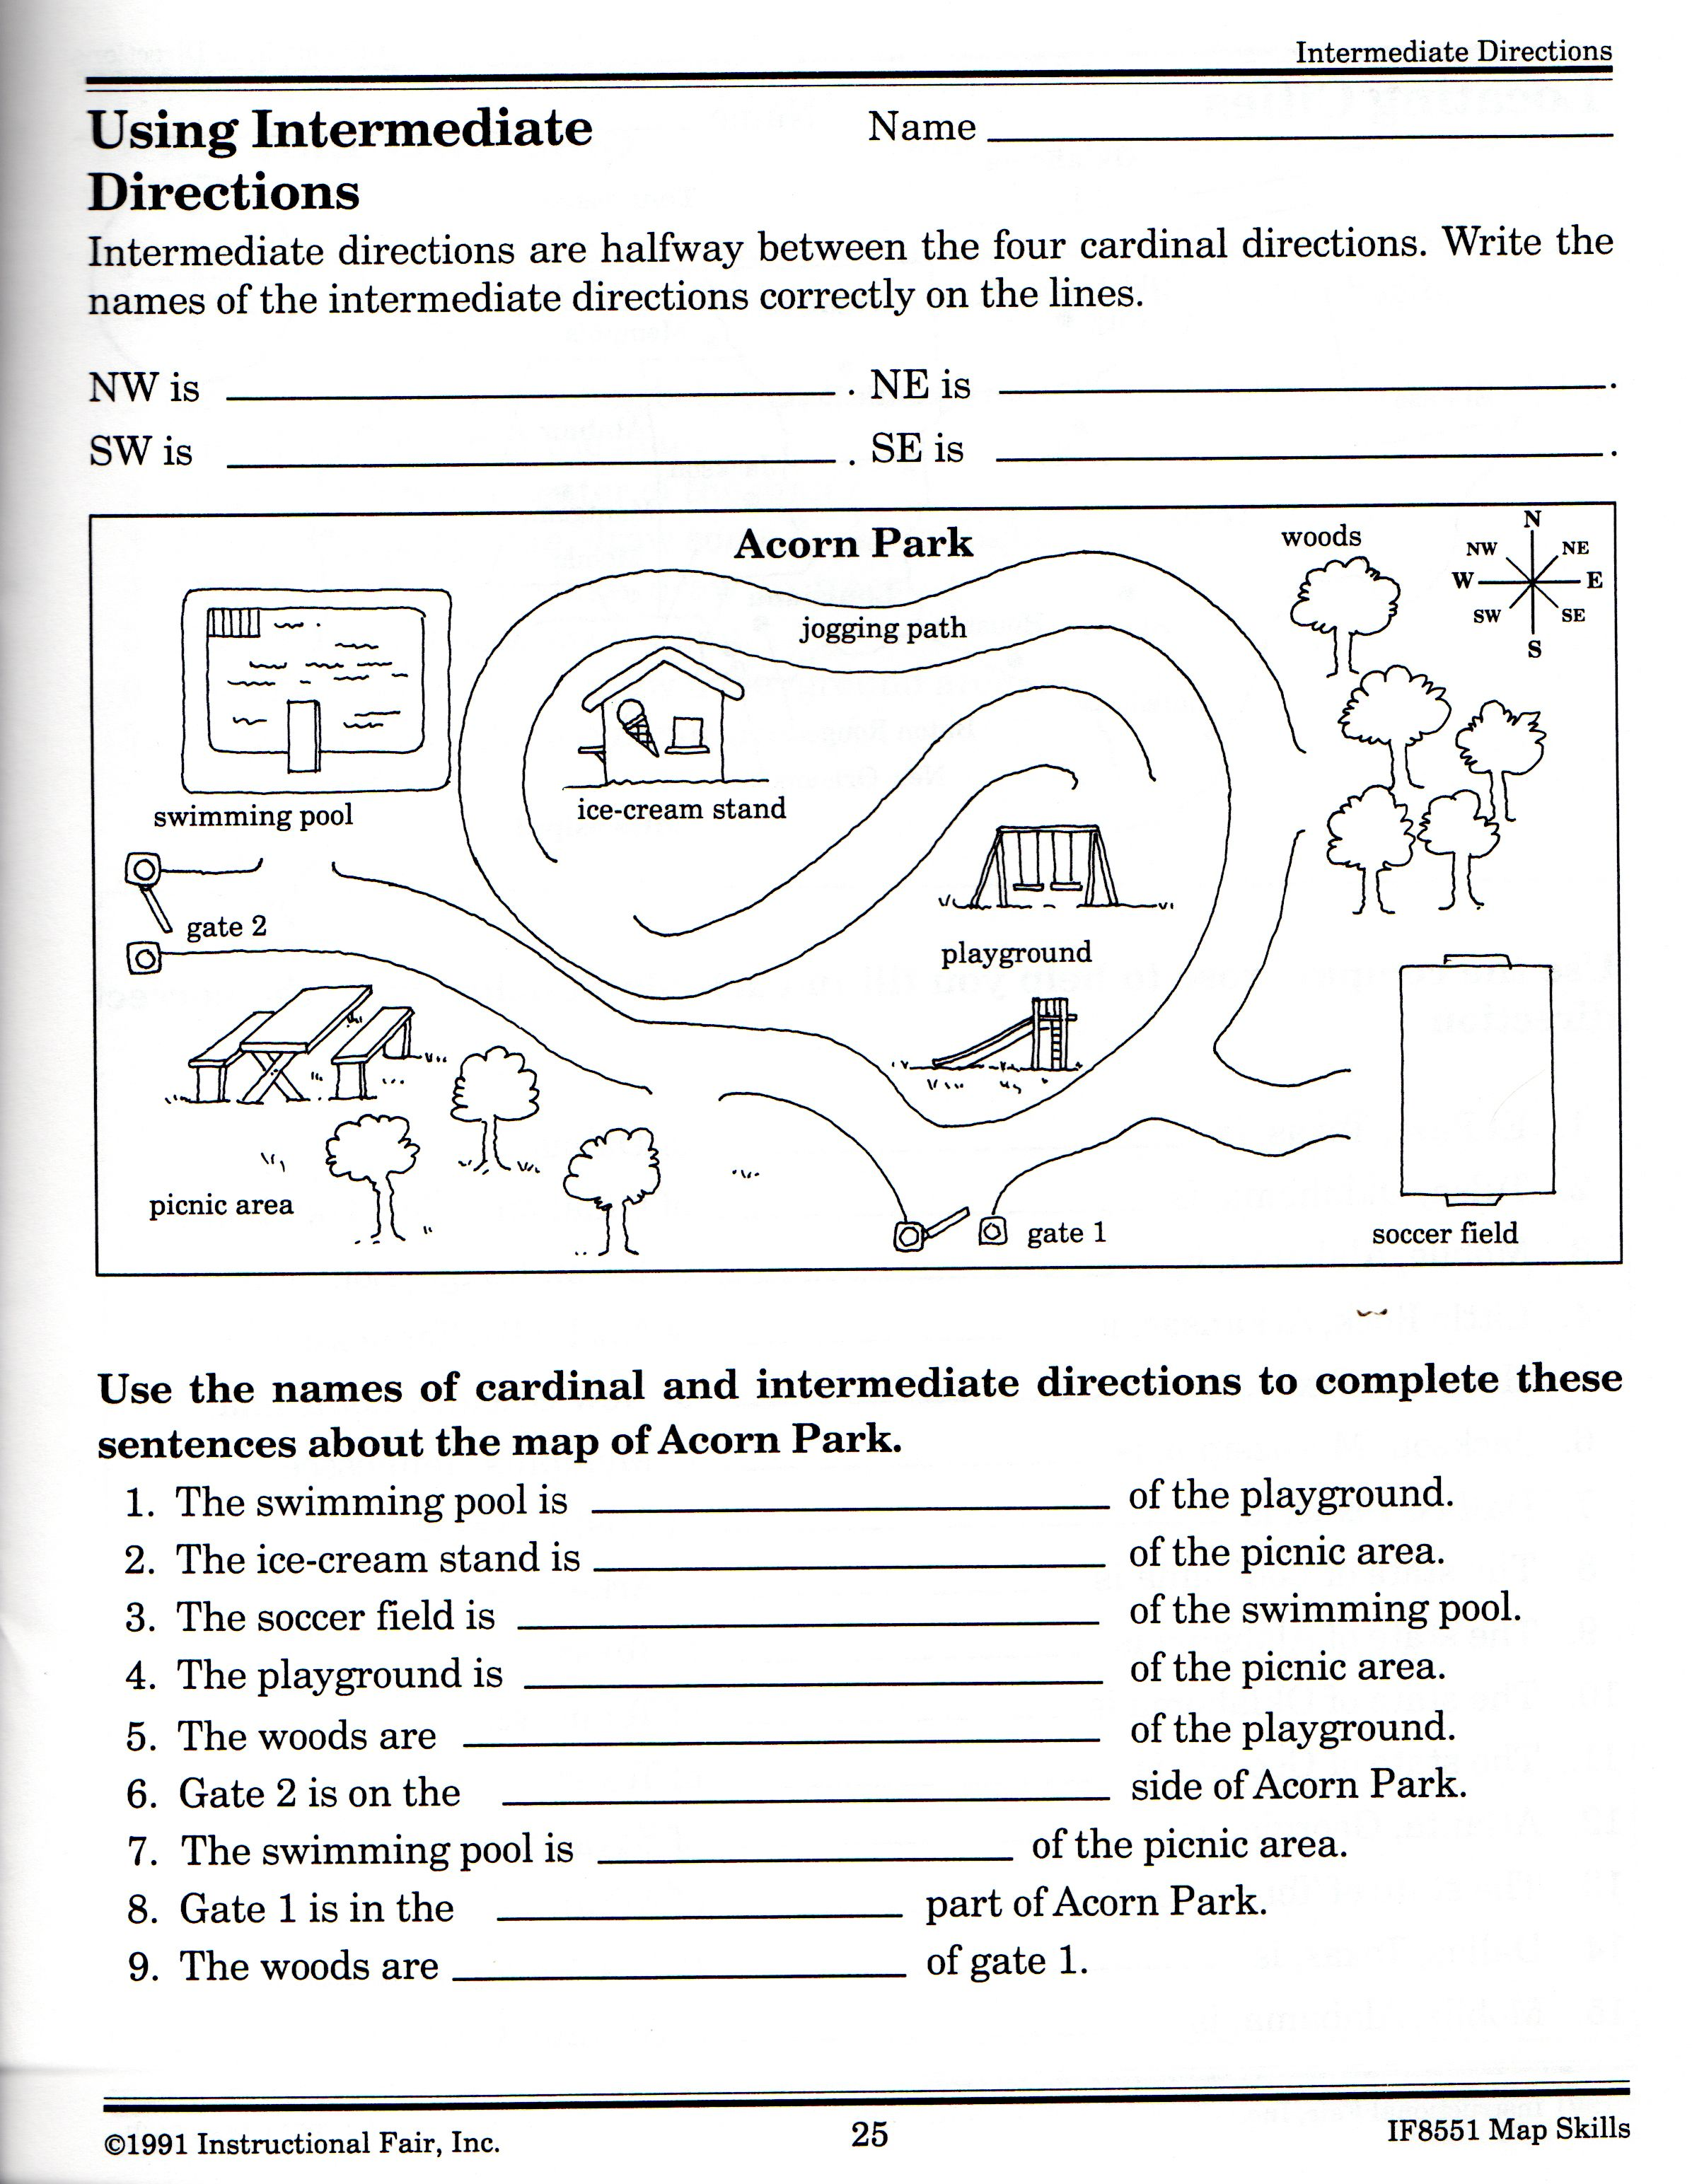 Intermediate Directions Worksheet